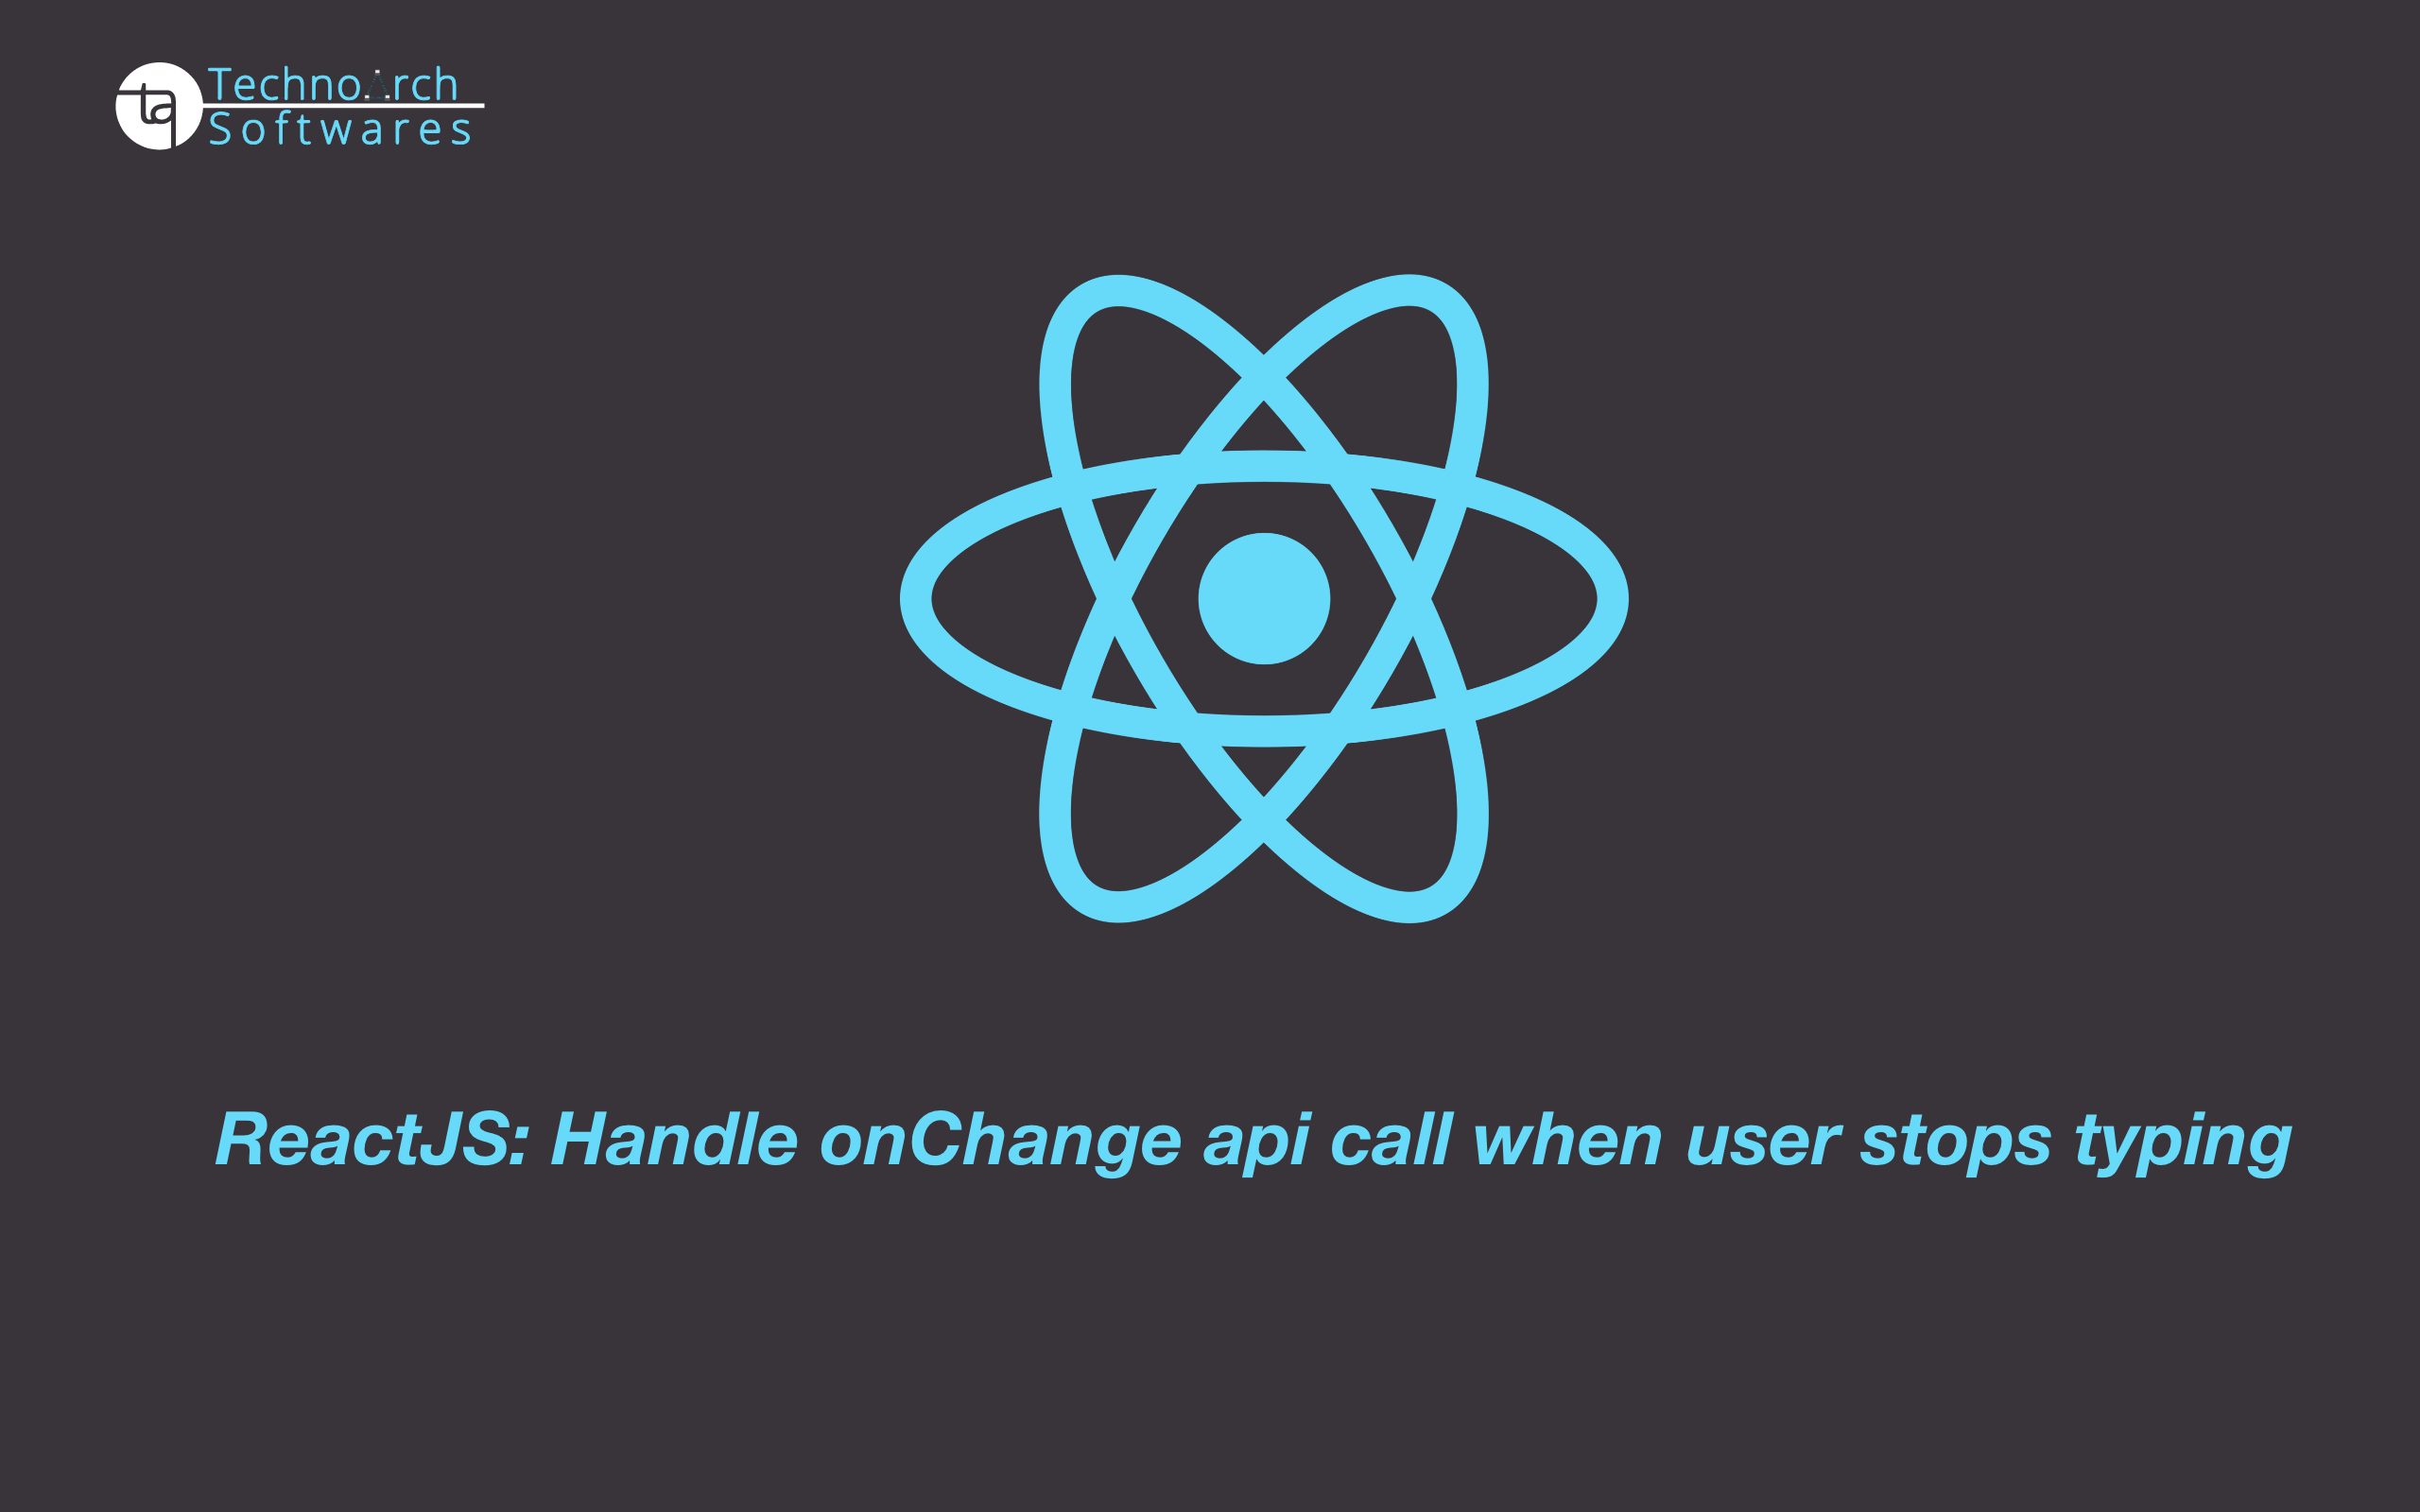 Technoarch Softwares - Blog - ReactJS: Handle onChange api call when user stops typing